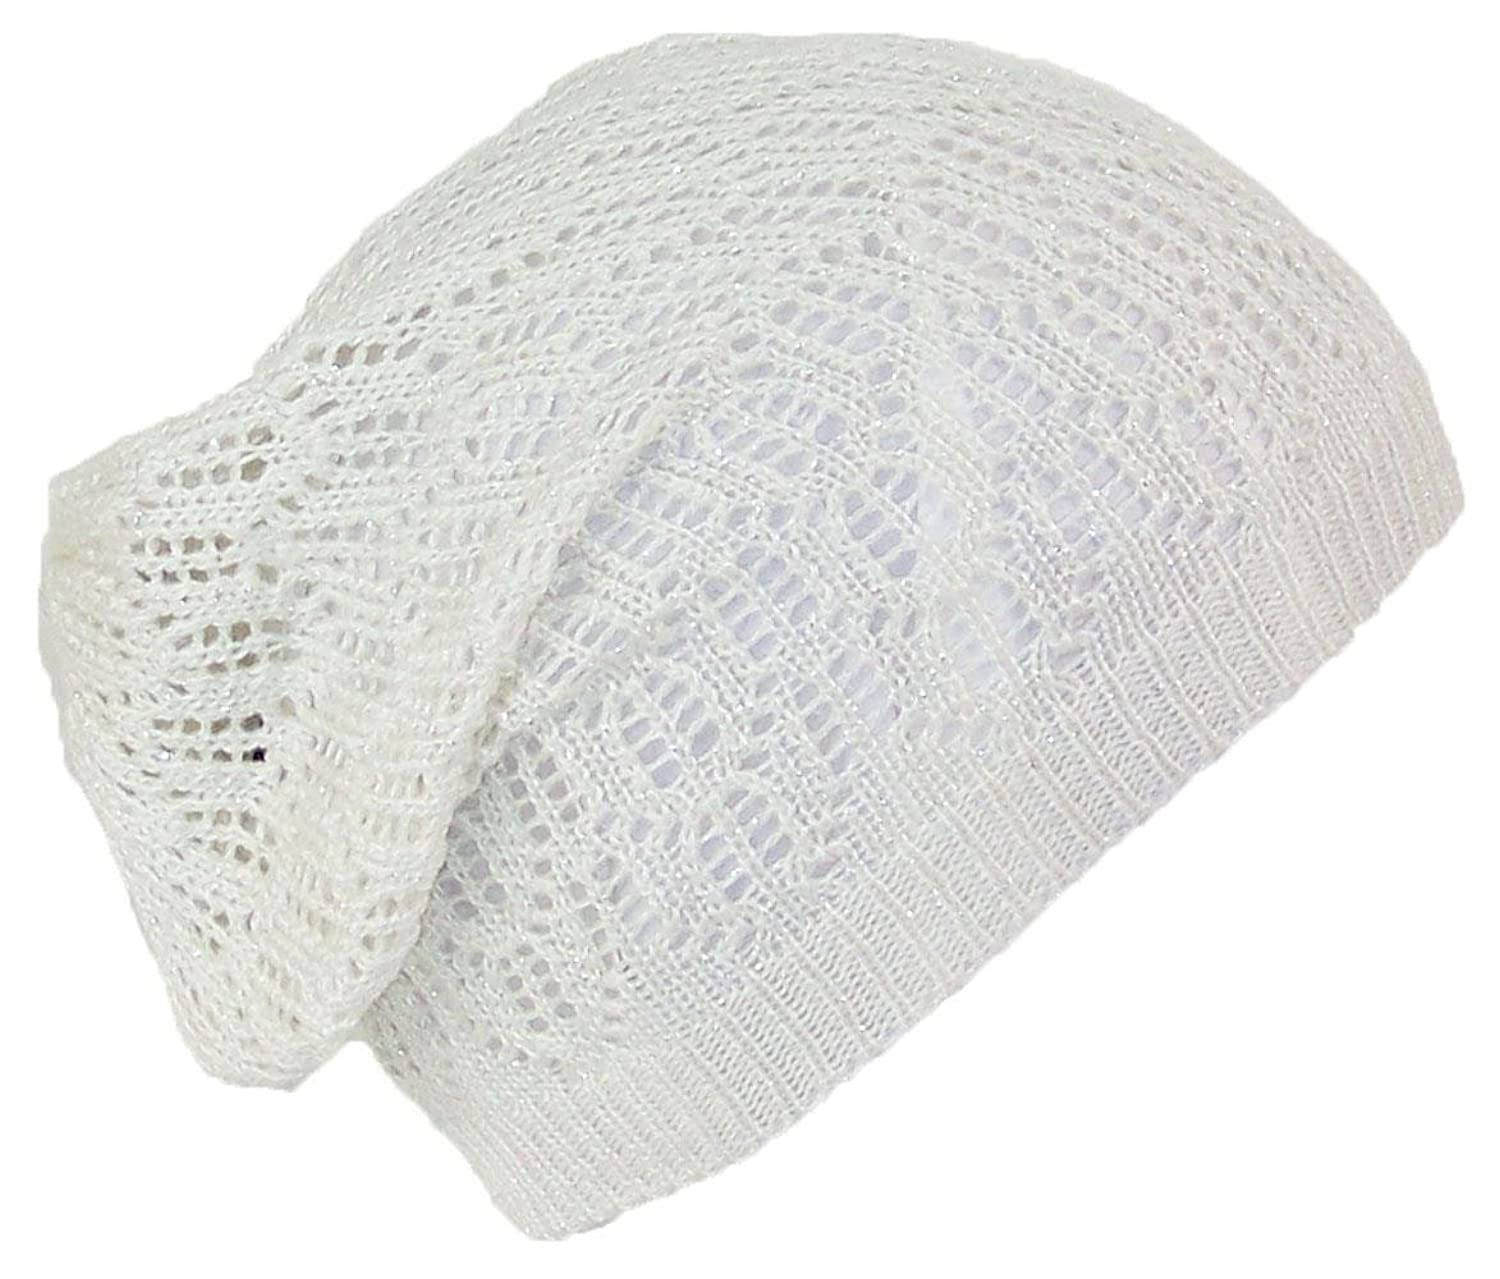 D&Y Women's Loose Shimmery Lightweight Ladder Stitch Knit Skull Cap (One Size)